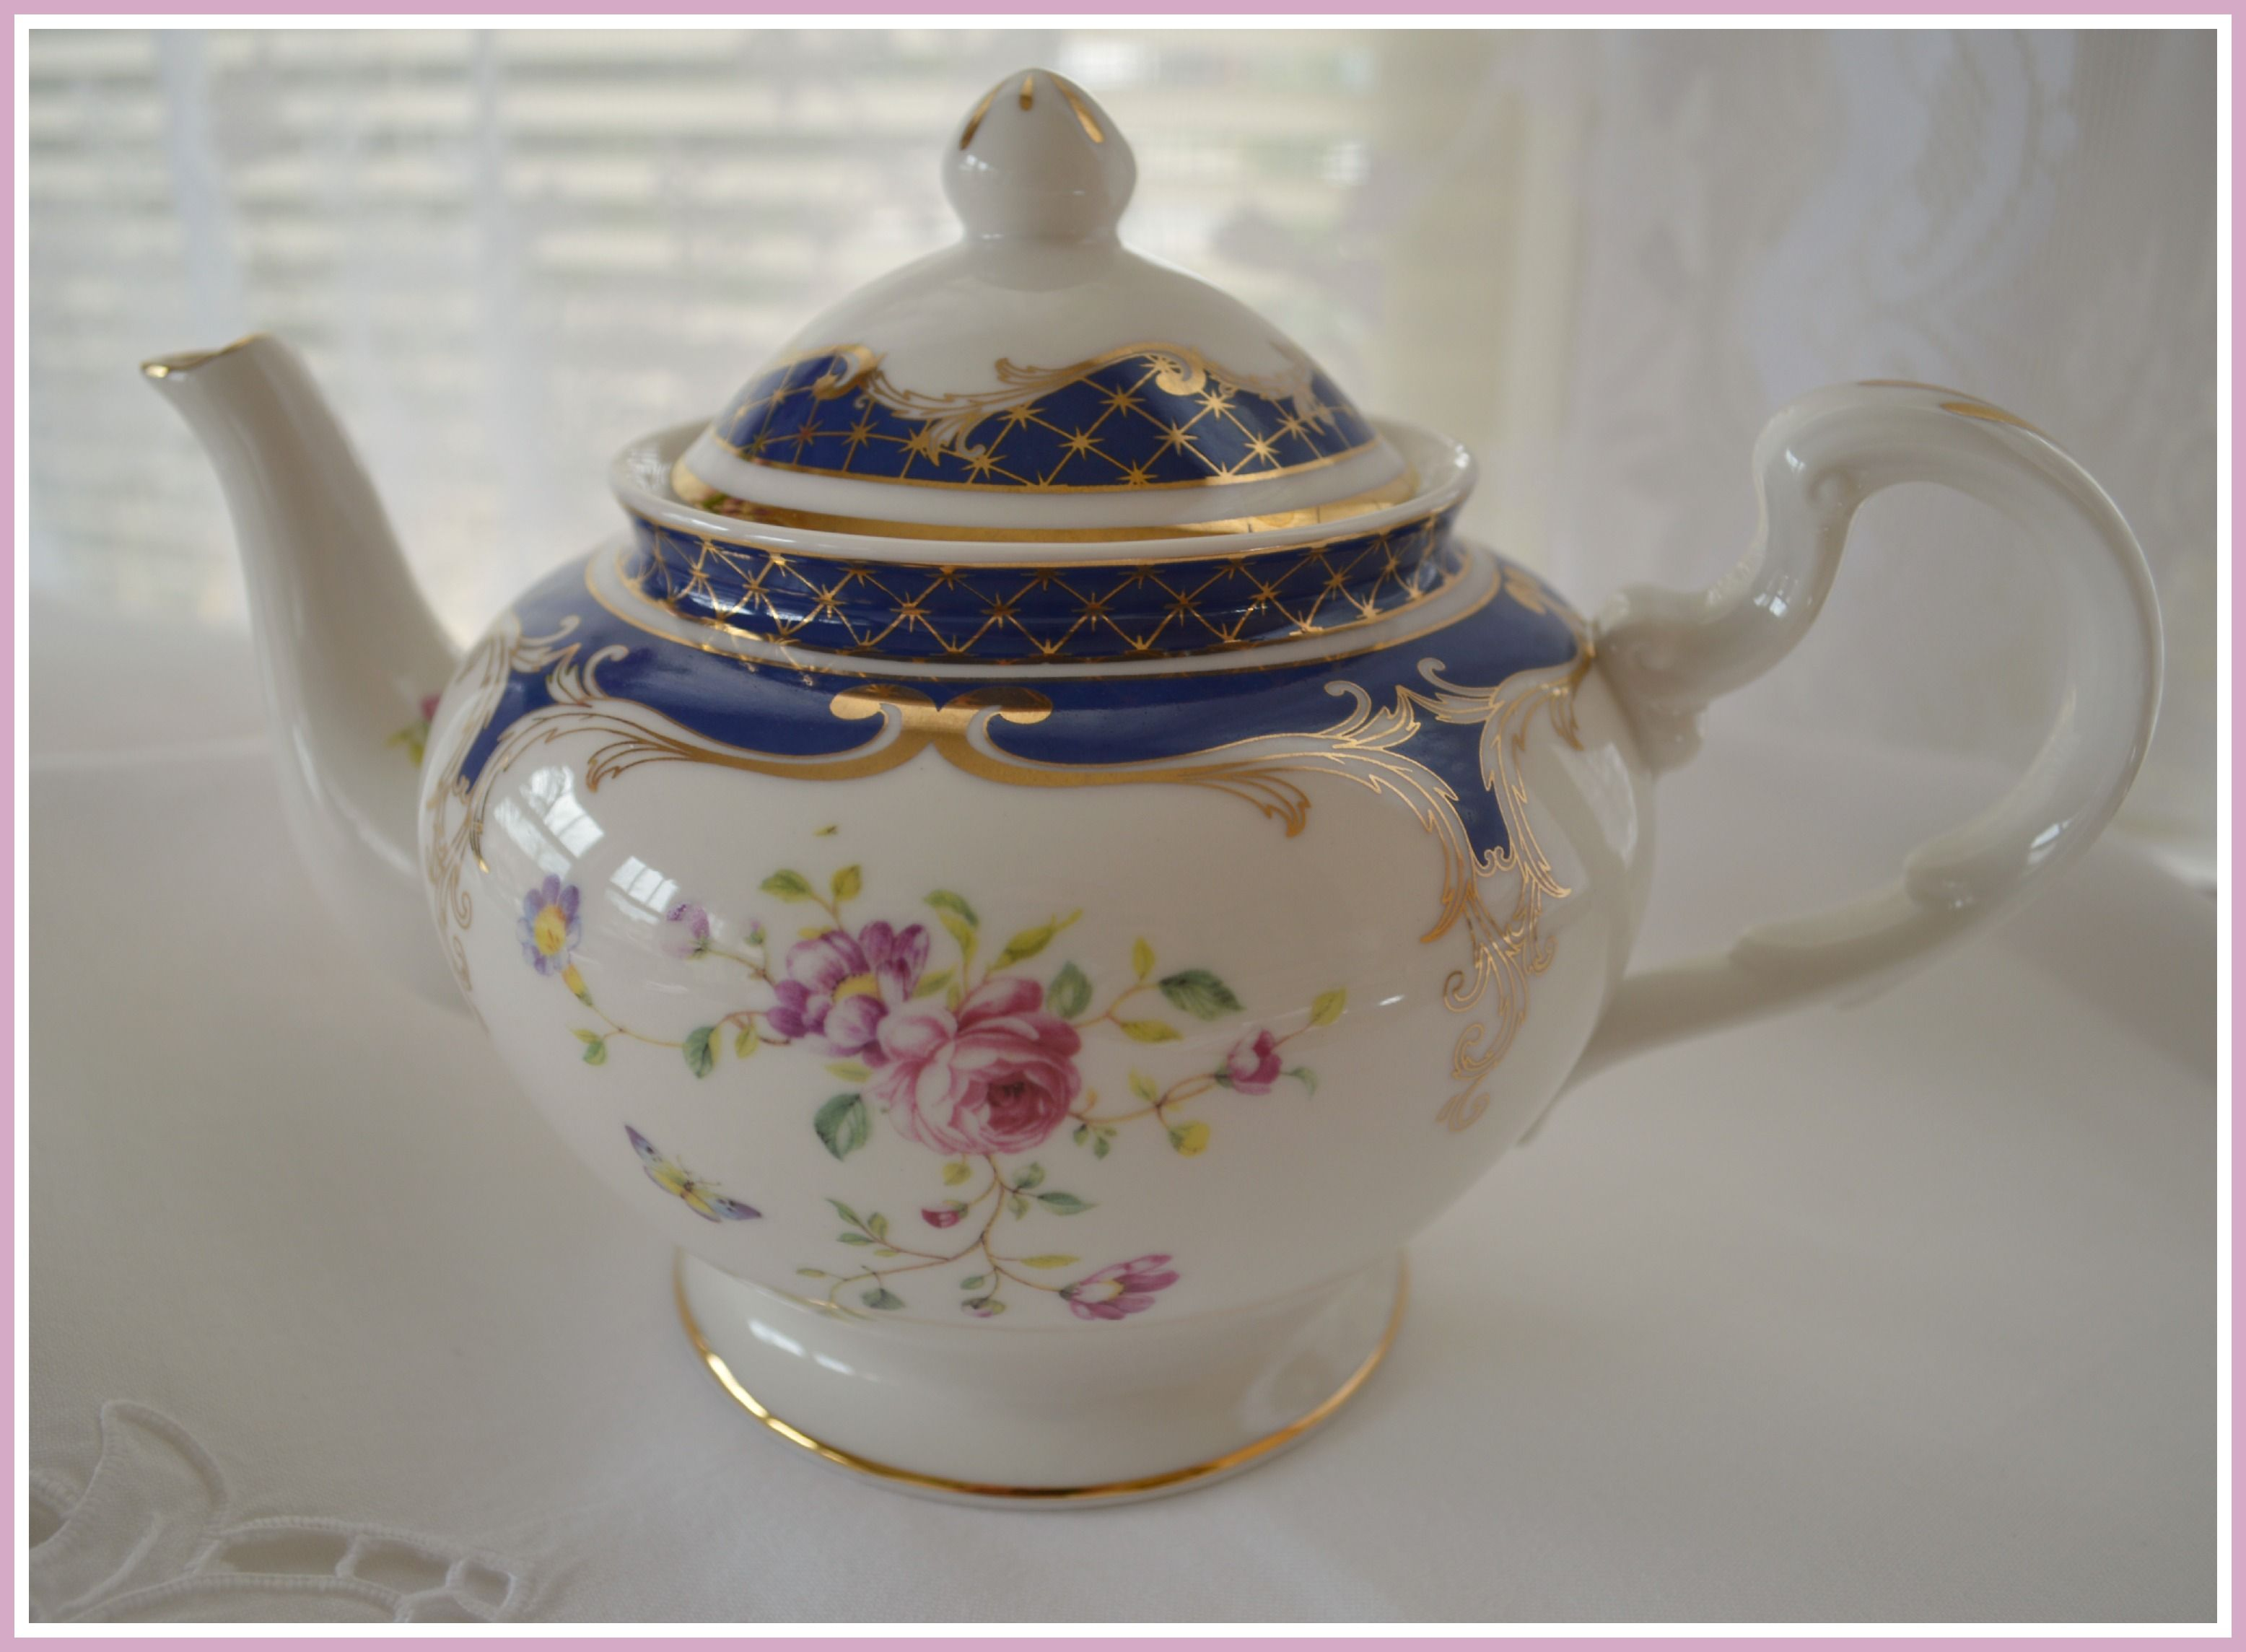 http://rosemary-thyme.blogspot.com/2014/03/purple-flowers-and-treasured-linens.html